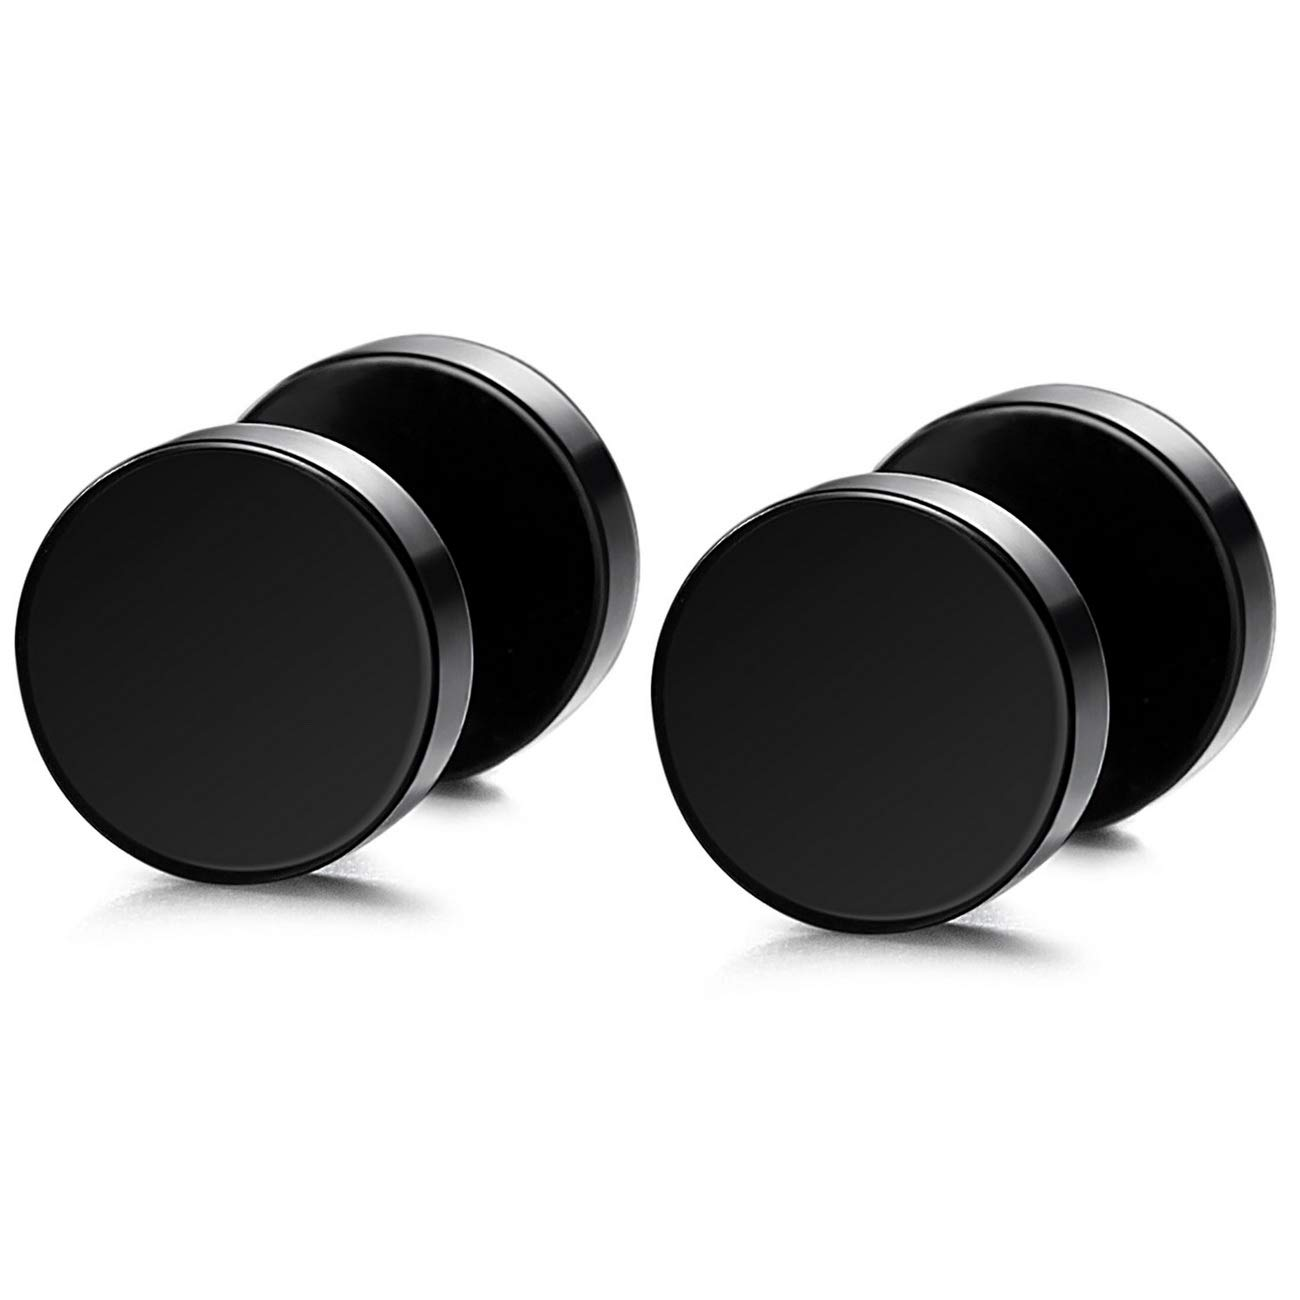 MOWOM Silver Gold Two Tone Black Stainless Steel Stud Earrings Tapers Plugs Tunnel Double Side ca5060031